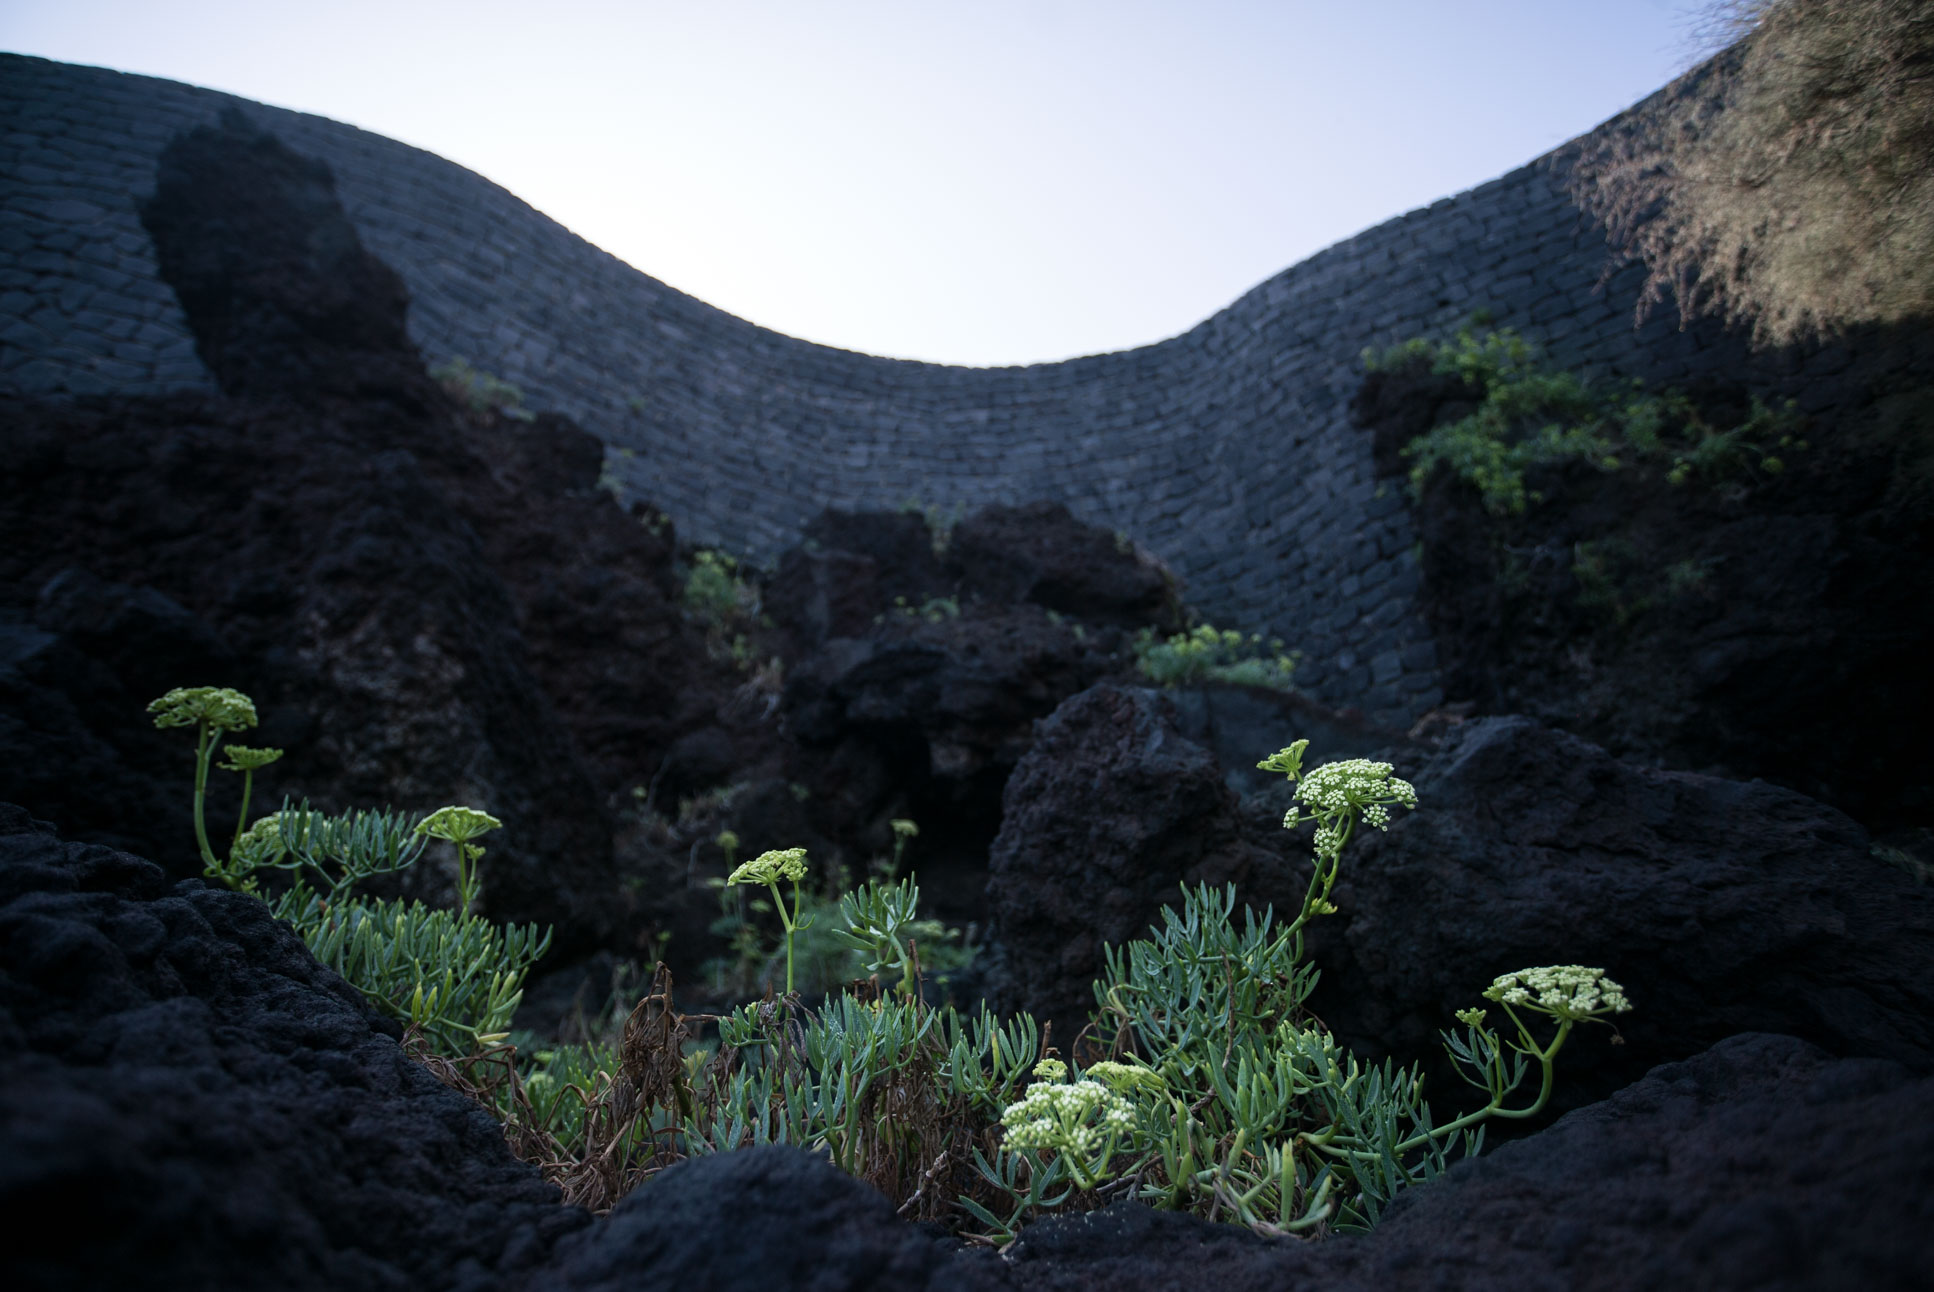 Photo by Pascal Sommer - Volcanic rocks on Stromboli